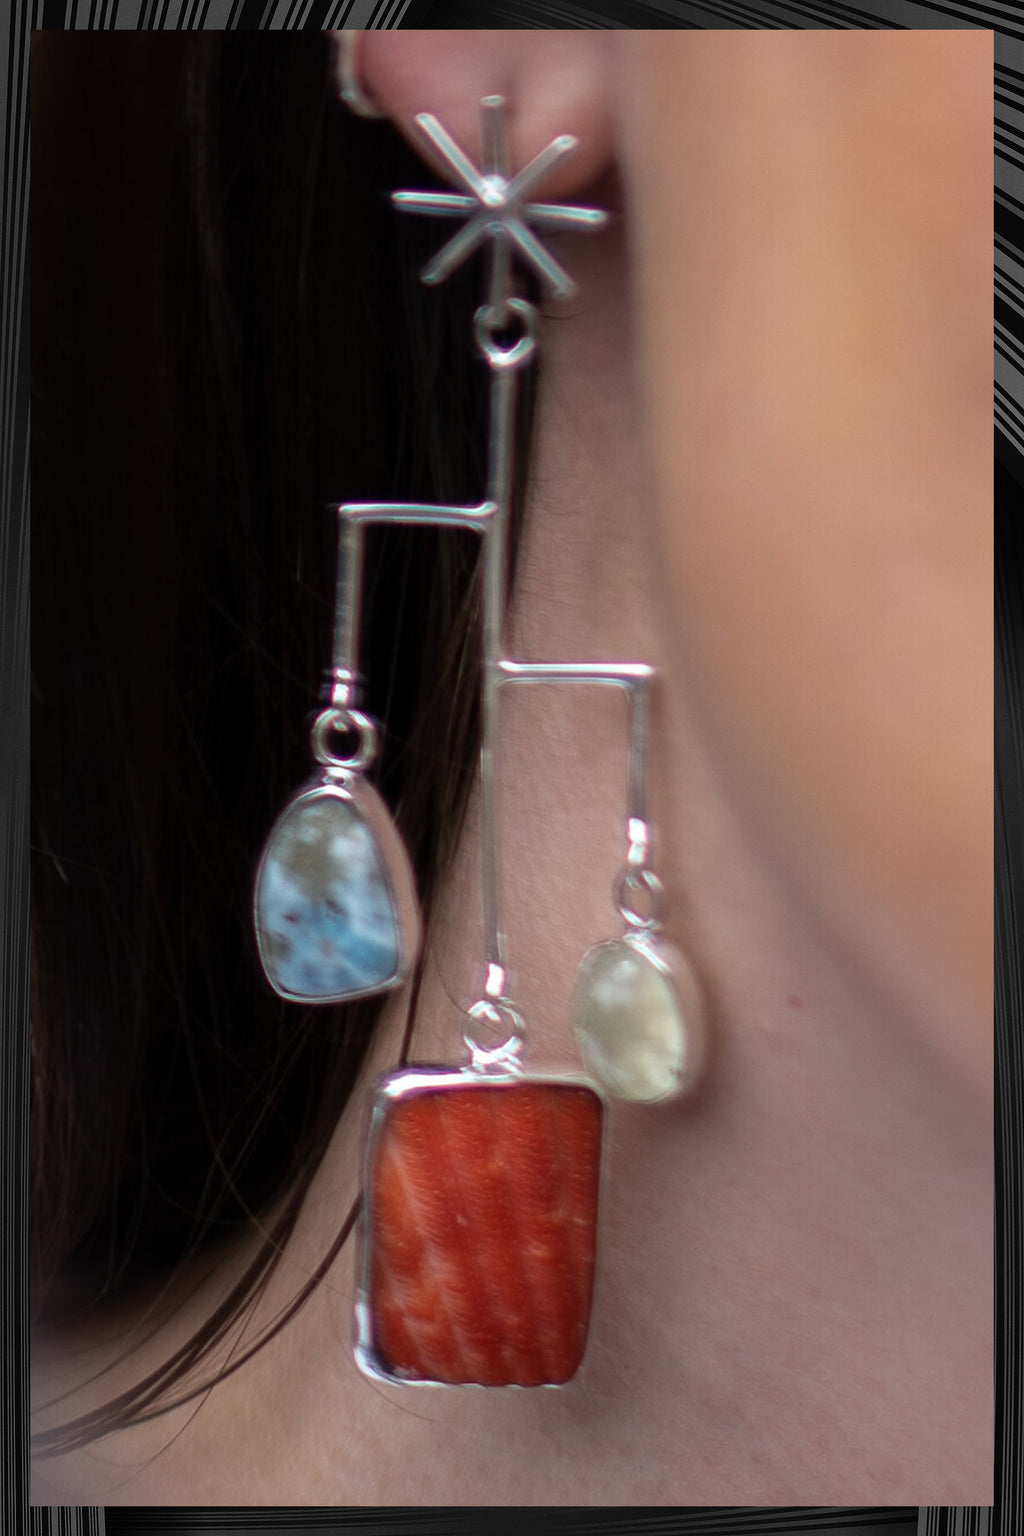 Caribbean Dreams Earrings | Free Delivery - 2-3 Week Shipping